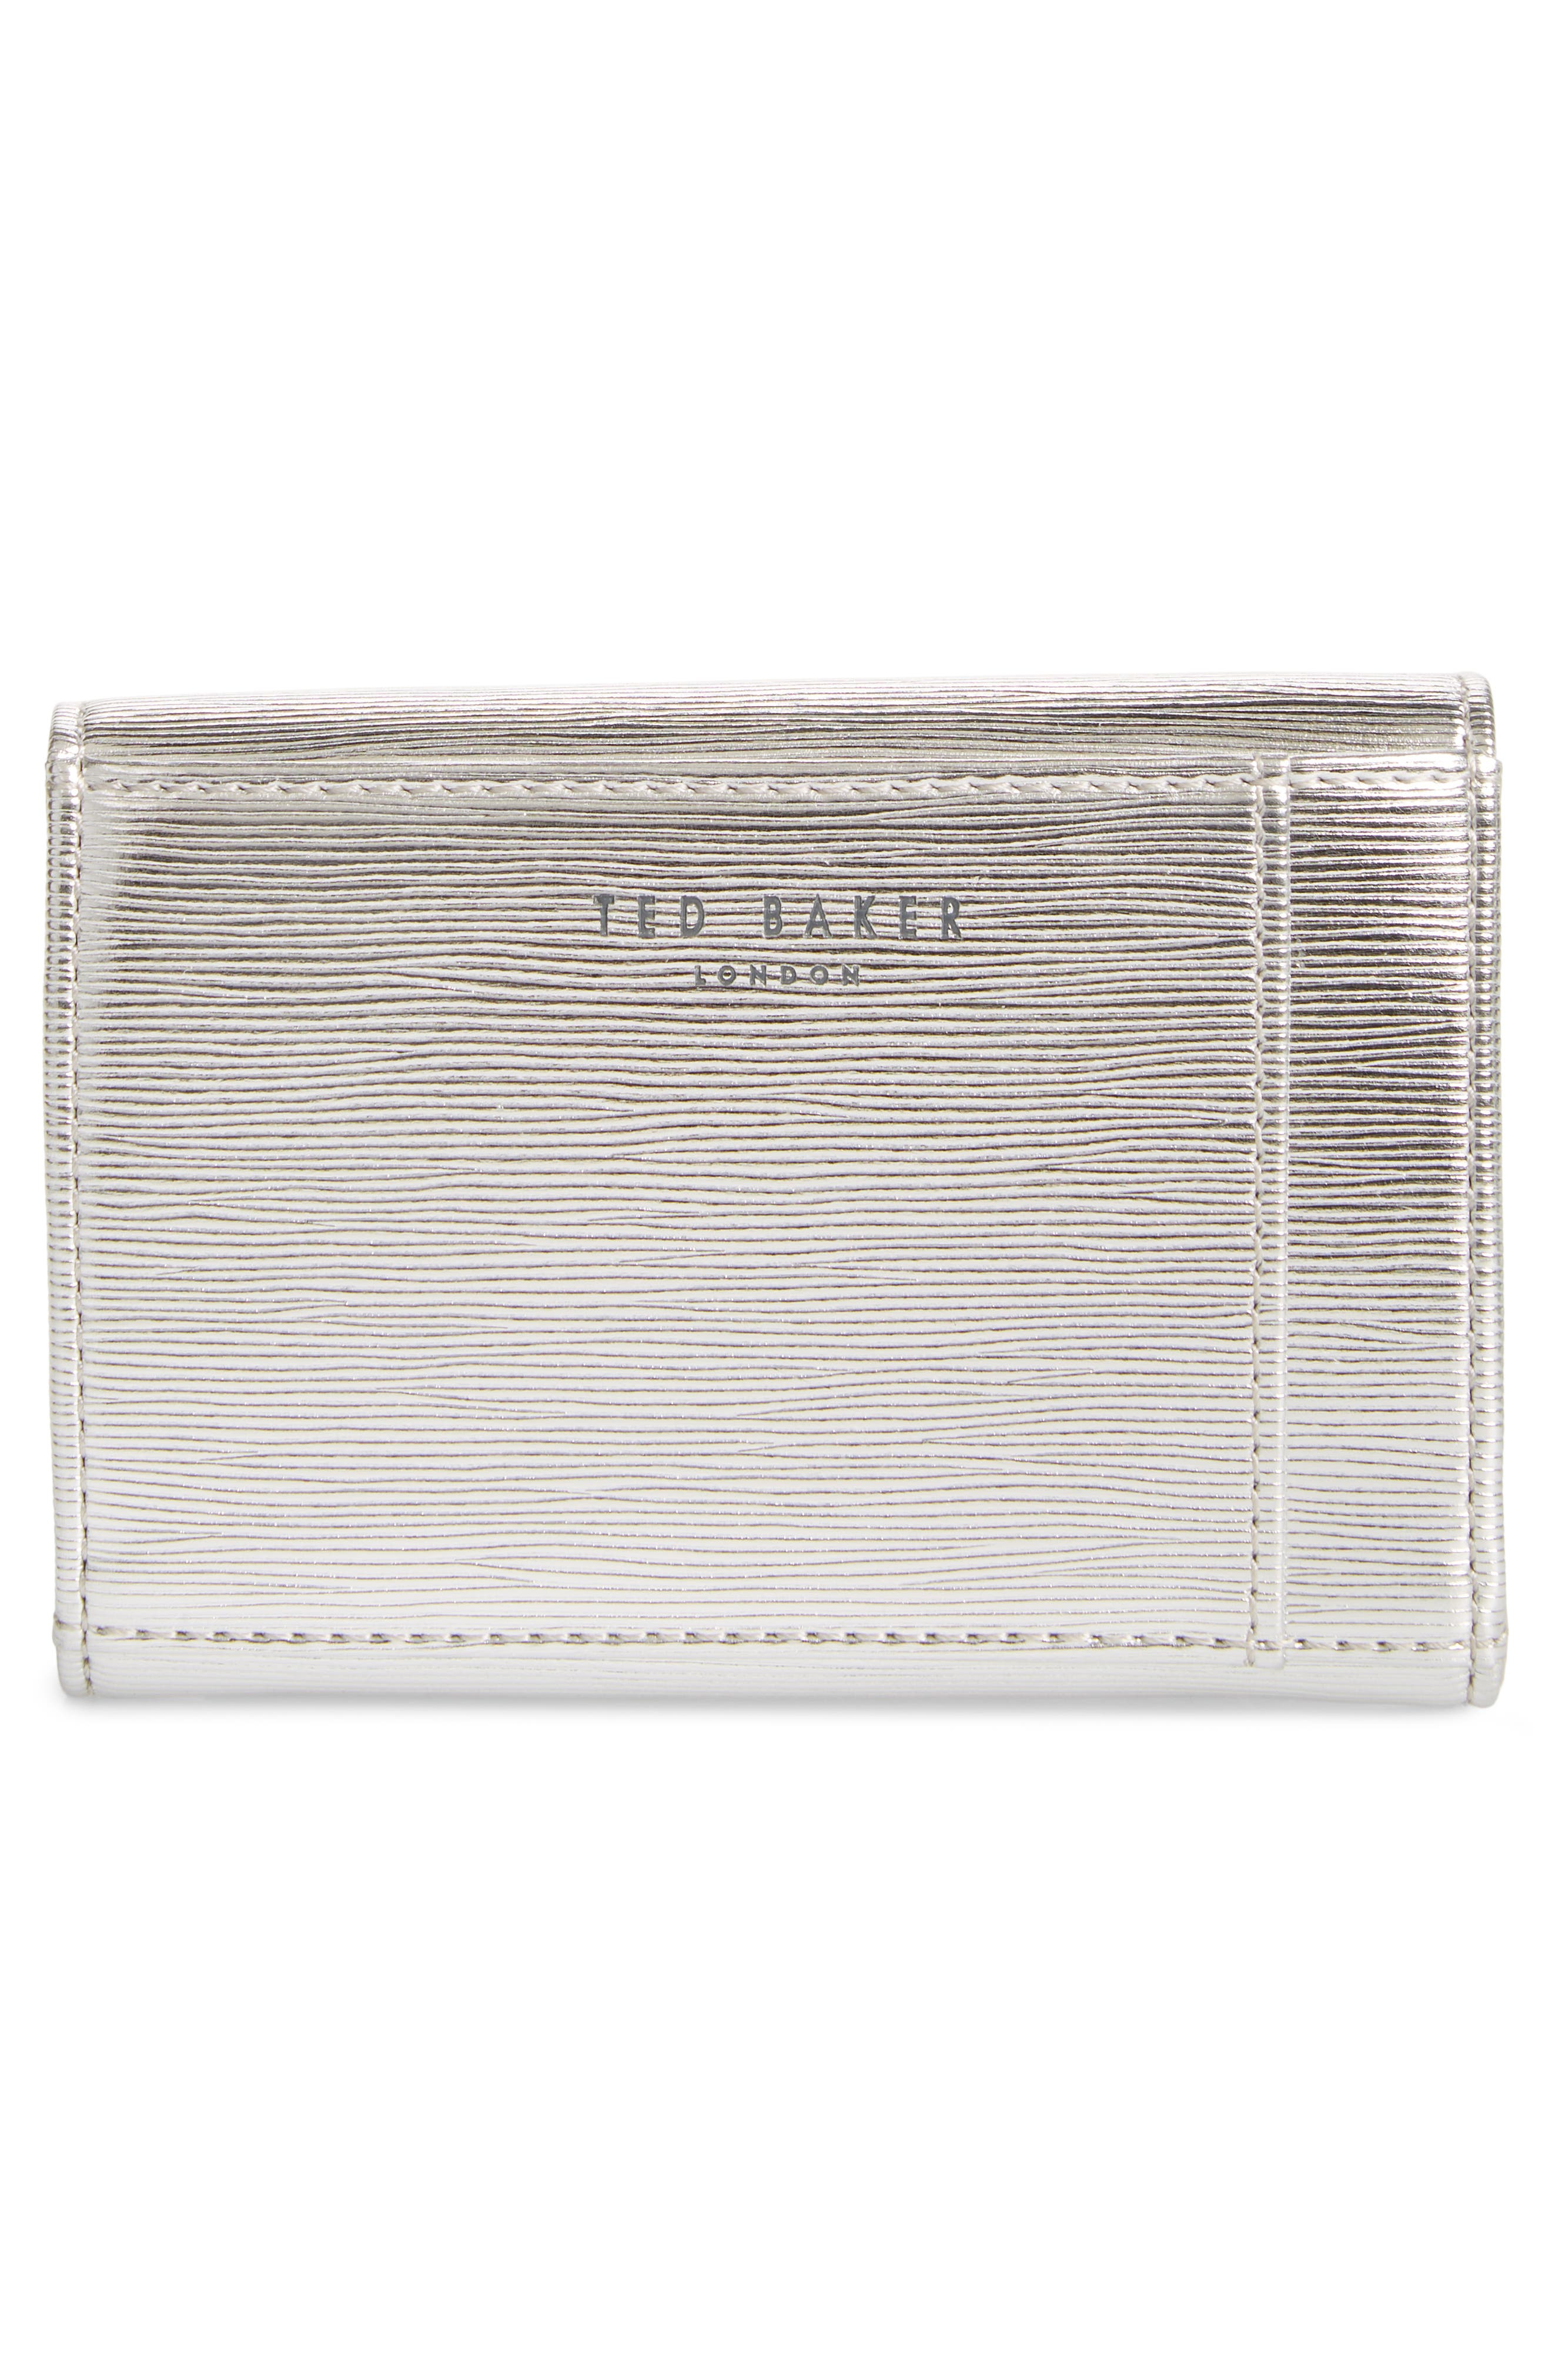 Valenta Plissé Leather Mini Wallet,                             Alternate thumbnail 8, color,